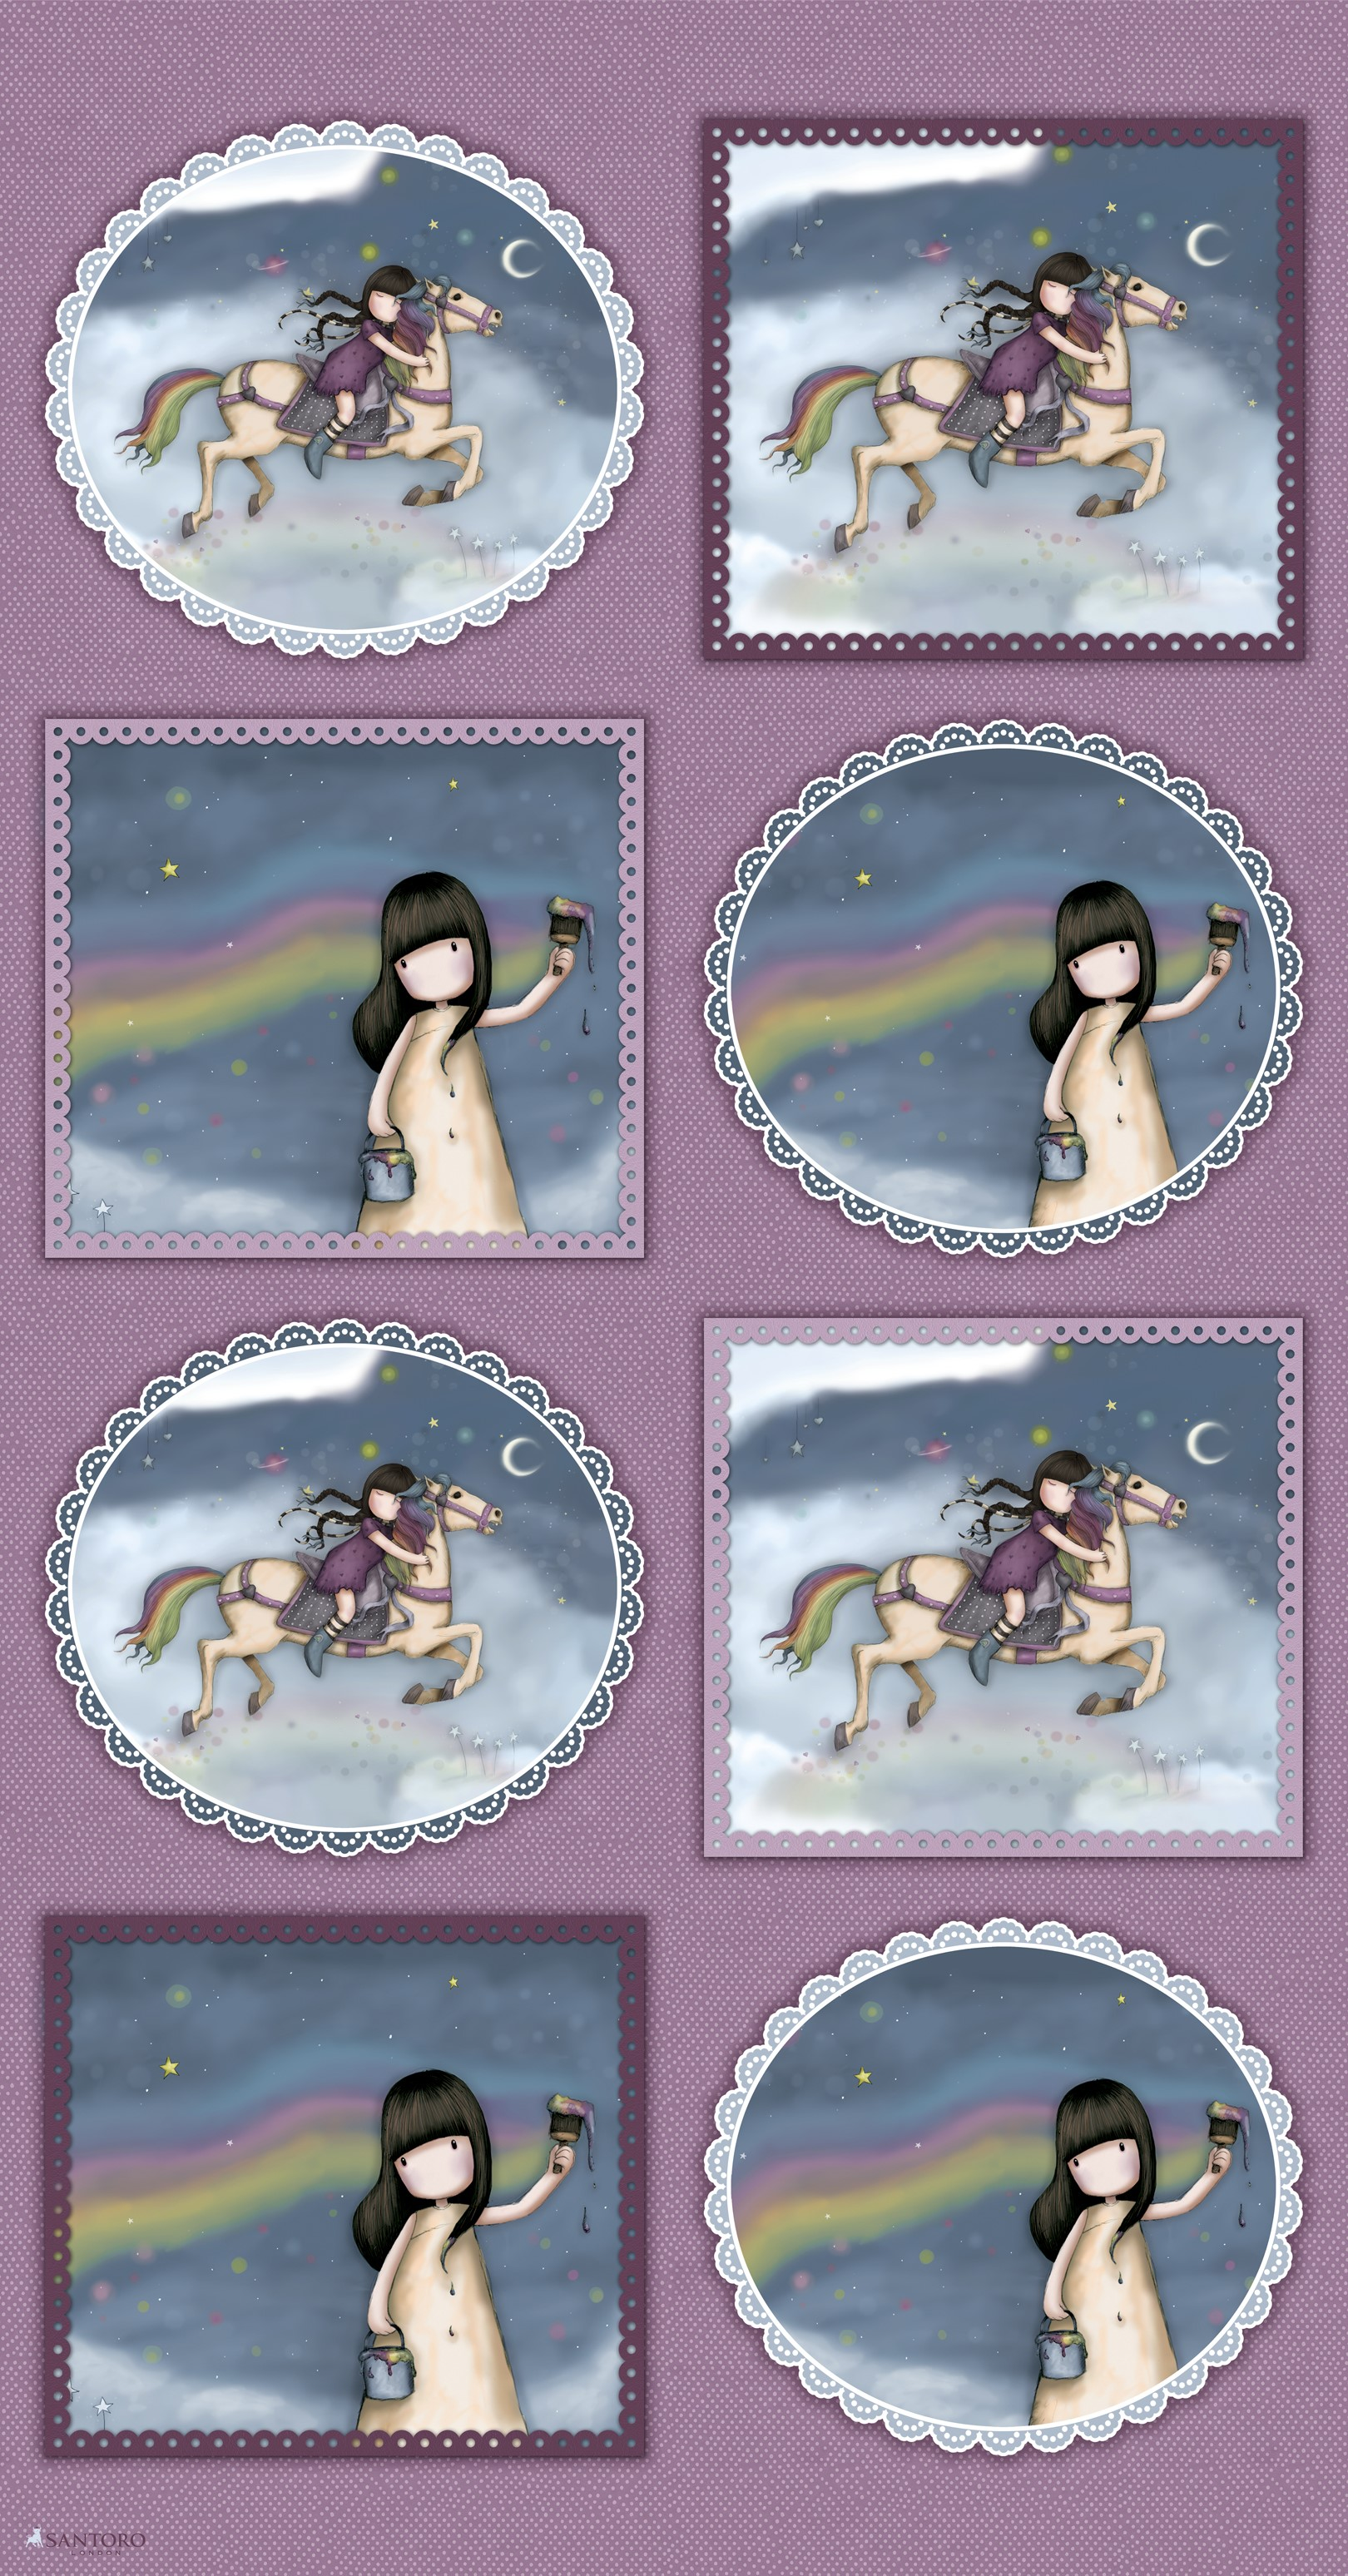 Rainbow Dreams-Gorjuss - panel